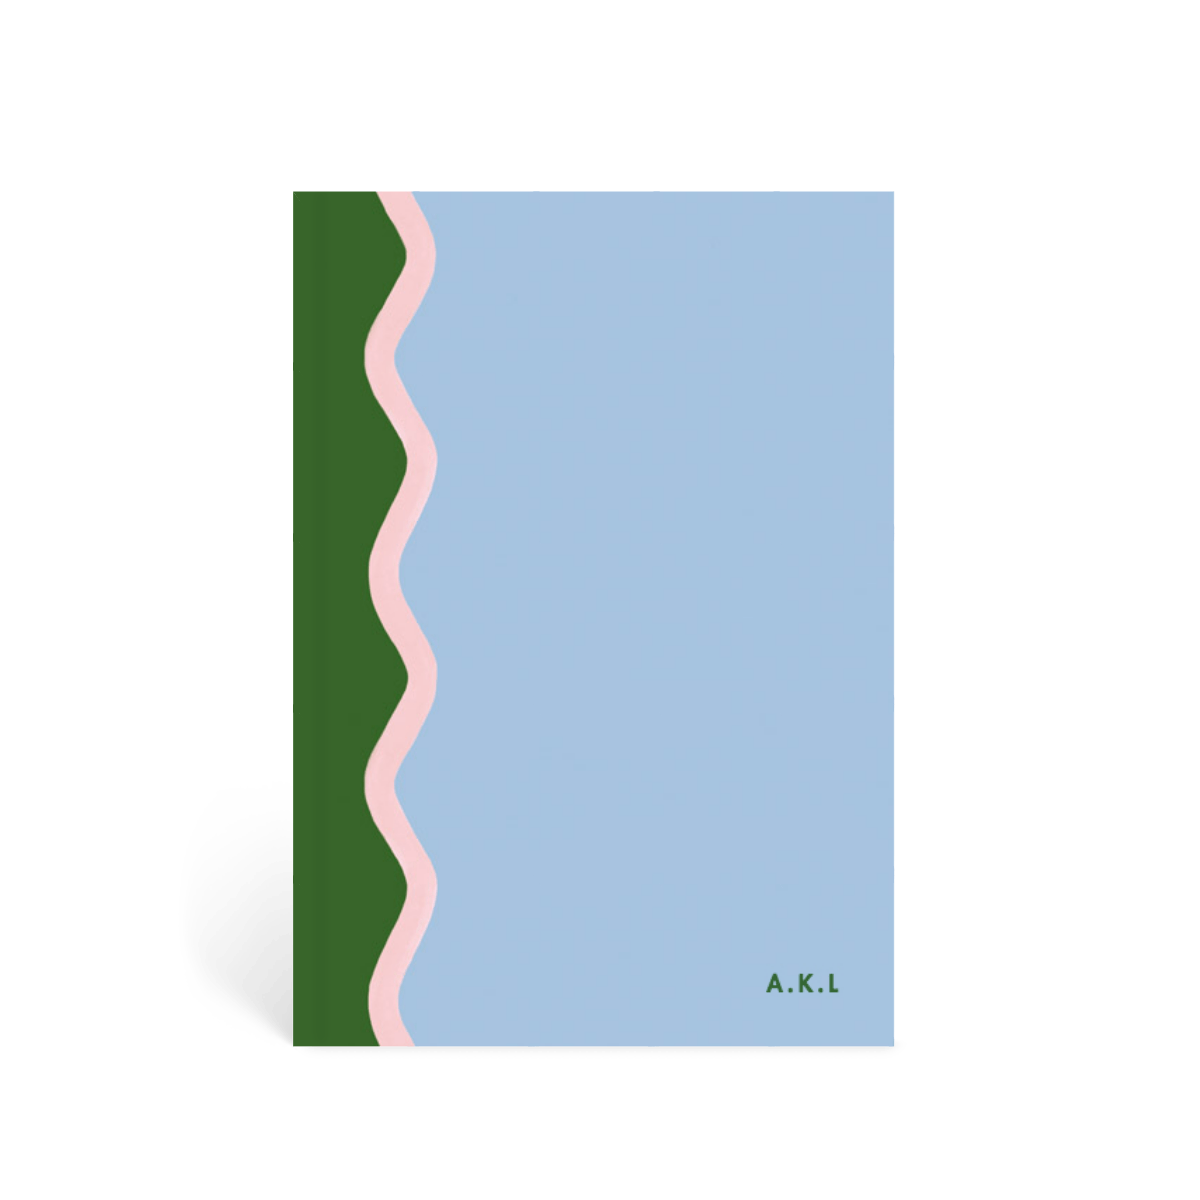 Https%3a%2f%2fwww.papier.com%2fproduct image%2f75329%2f25%2fscallop spine 17653 front 1557494242.png?ixlib=rb 1.1